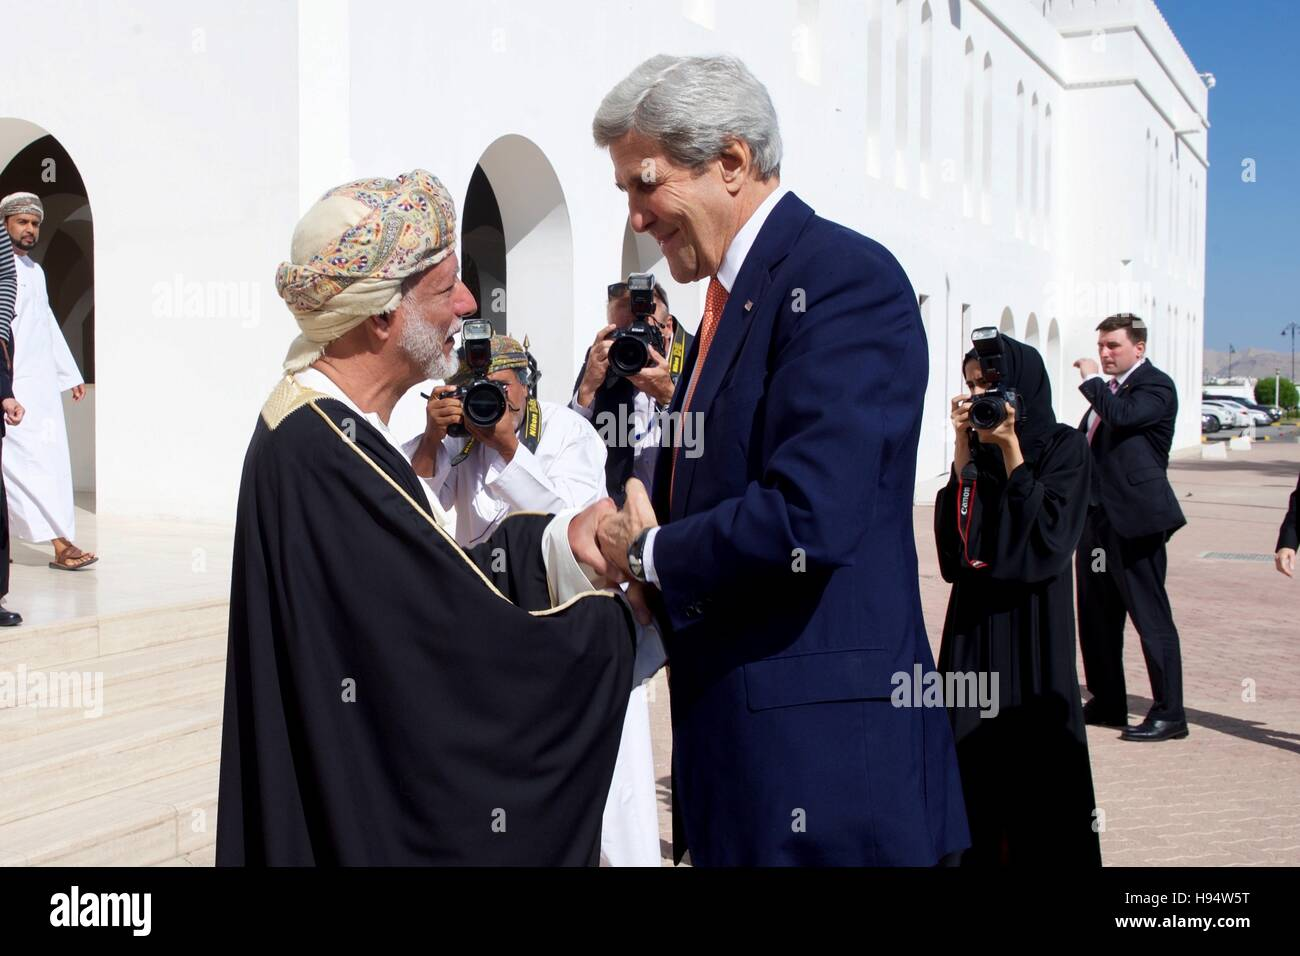 U.S. Secretary of State John Kerry greets Omani Foreign Minister Yusuf bin Alawi upon his arrival at the Ministry - Stock Image